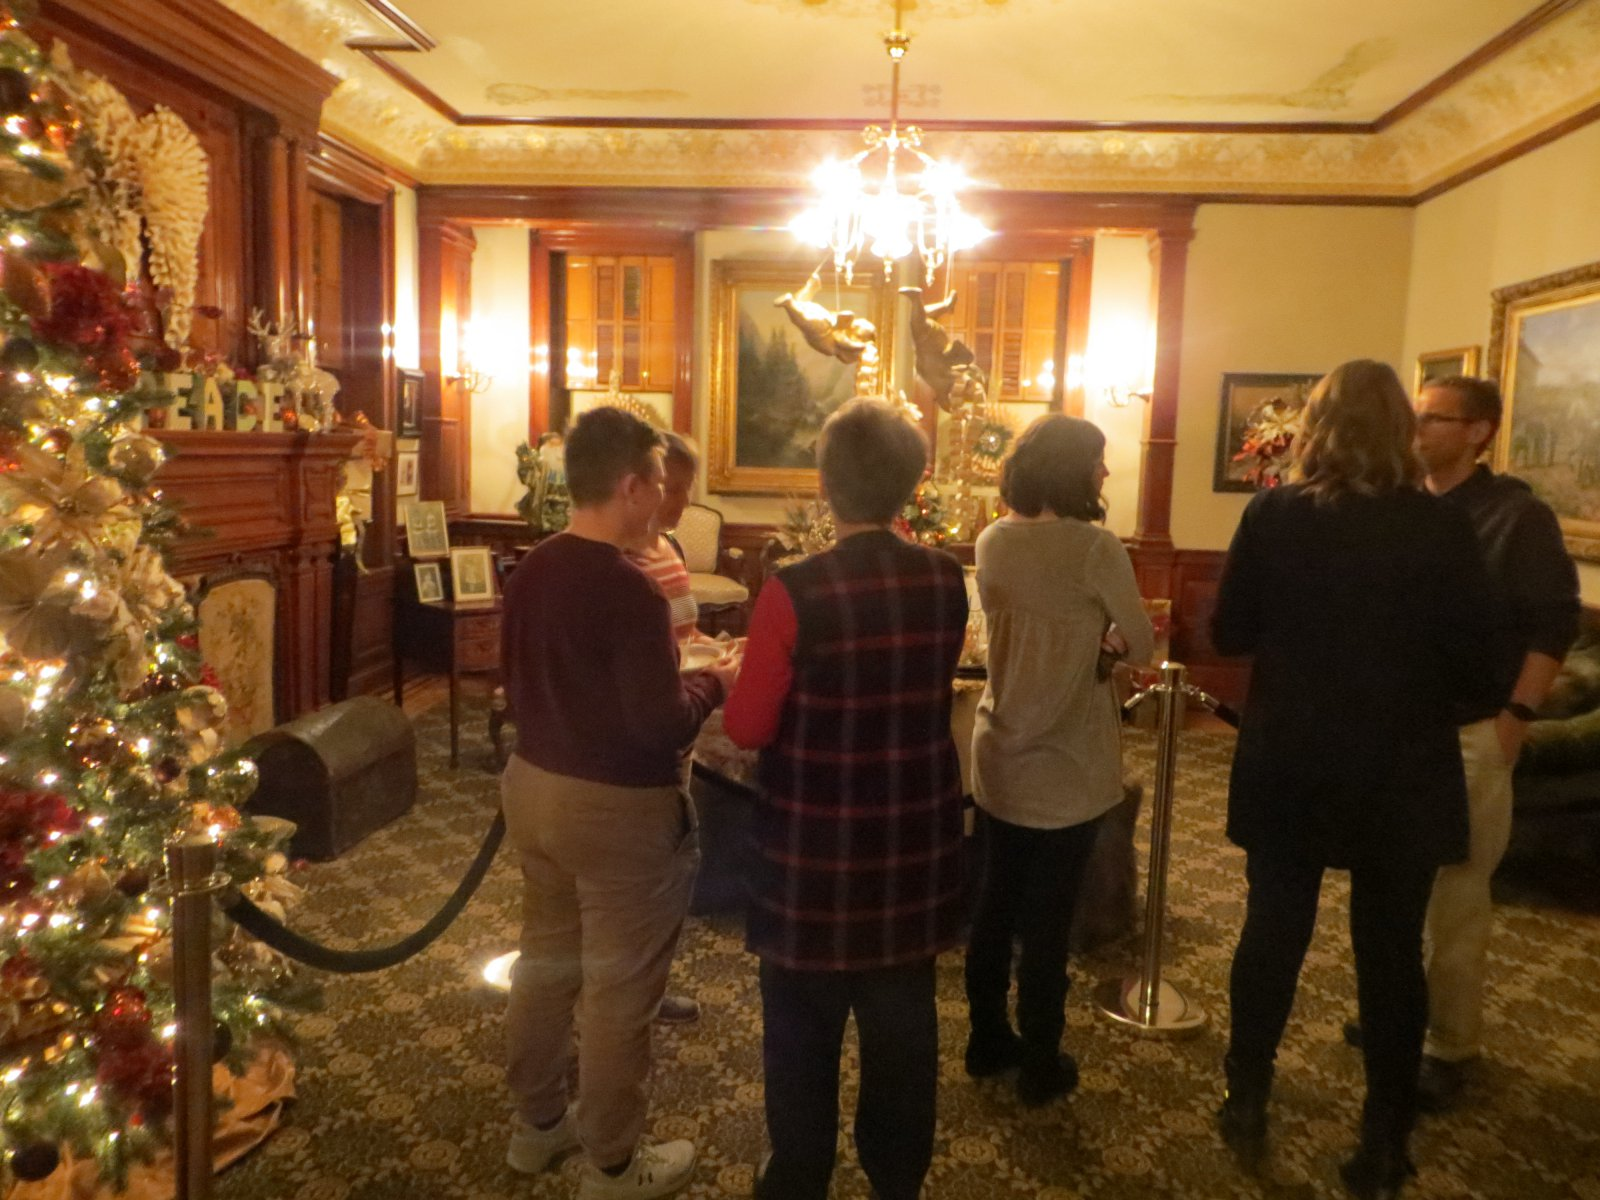 Inside the Pabst Mansion